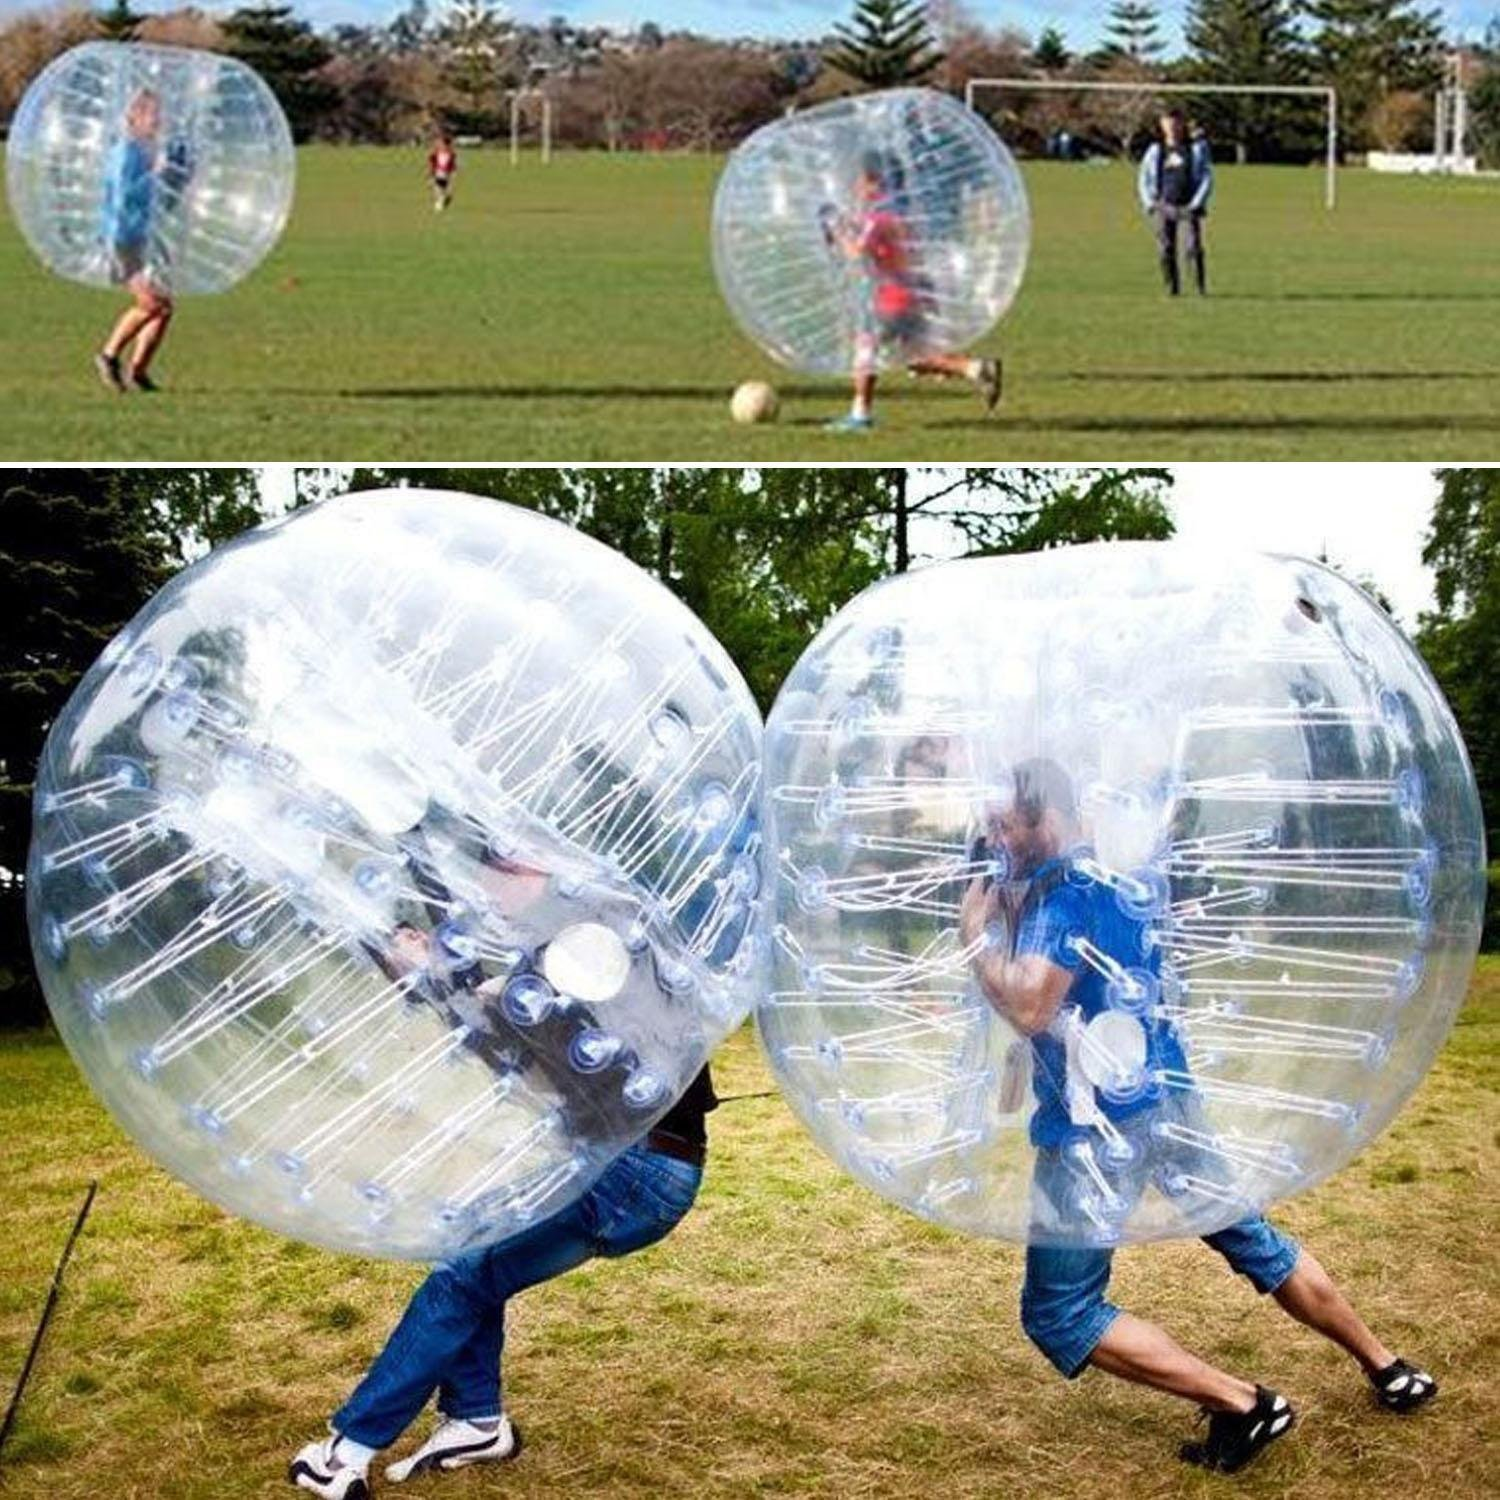 1.5m PVC Super Big Giant Large Transparent Pump Bubble Soccer Ball Balls as Chair Toy for Game to Men Women Kids [ARRIVE in 3-7 DAYS] by Ferty